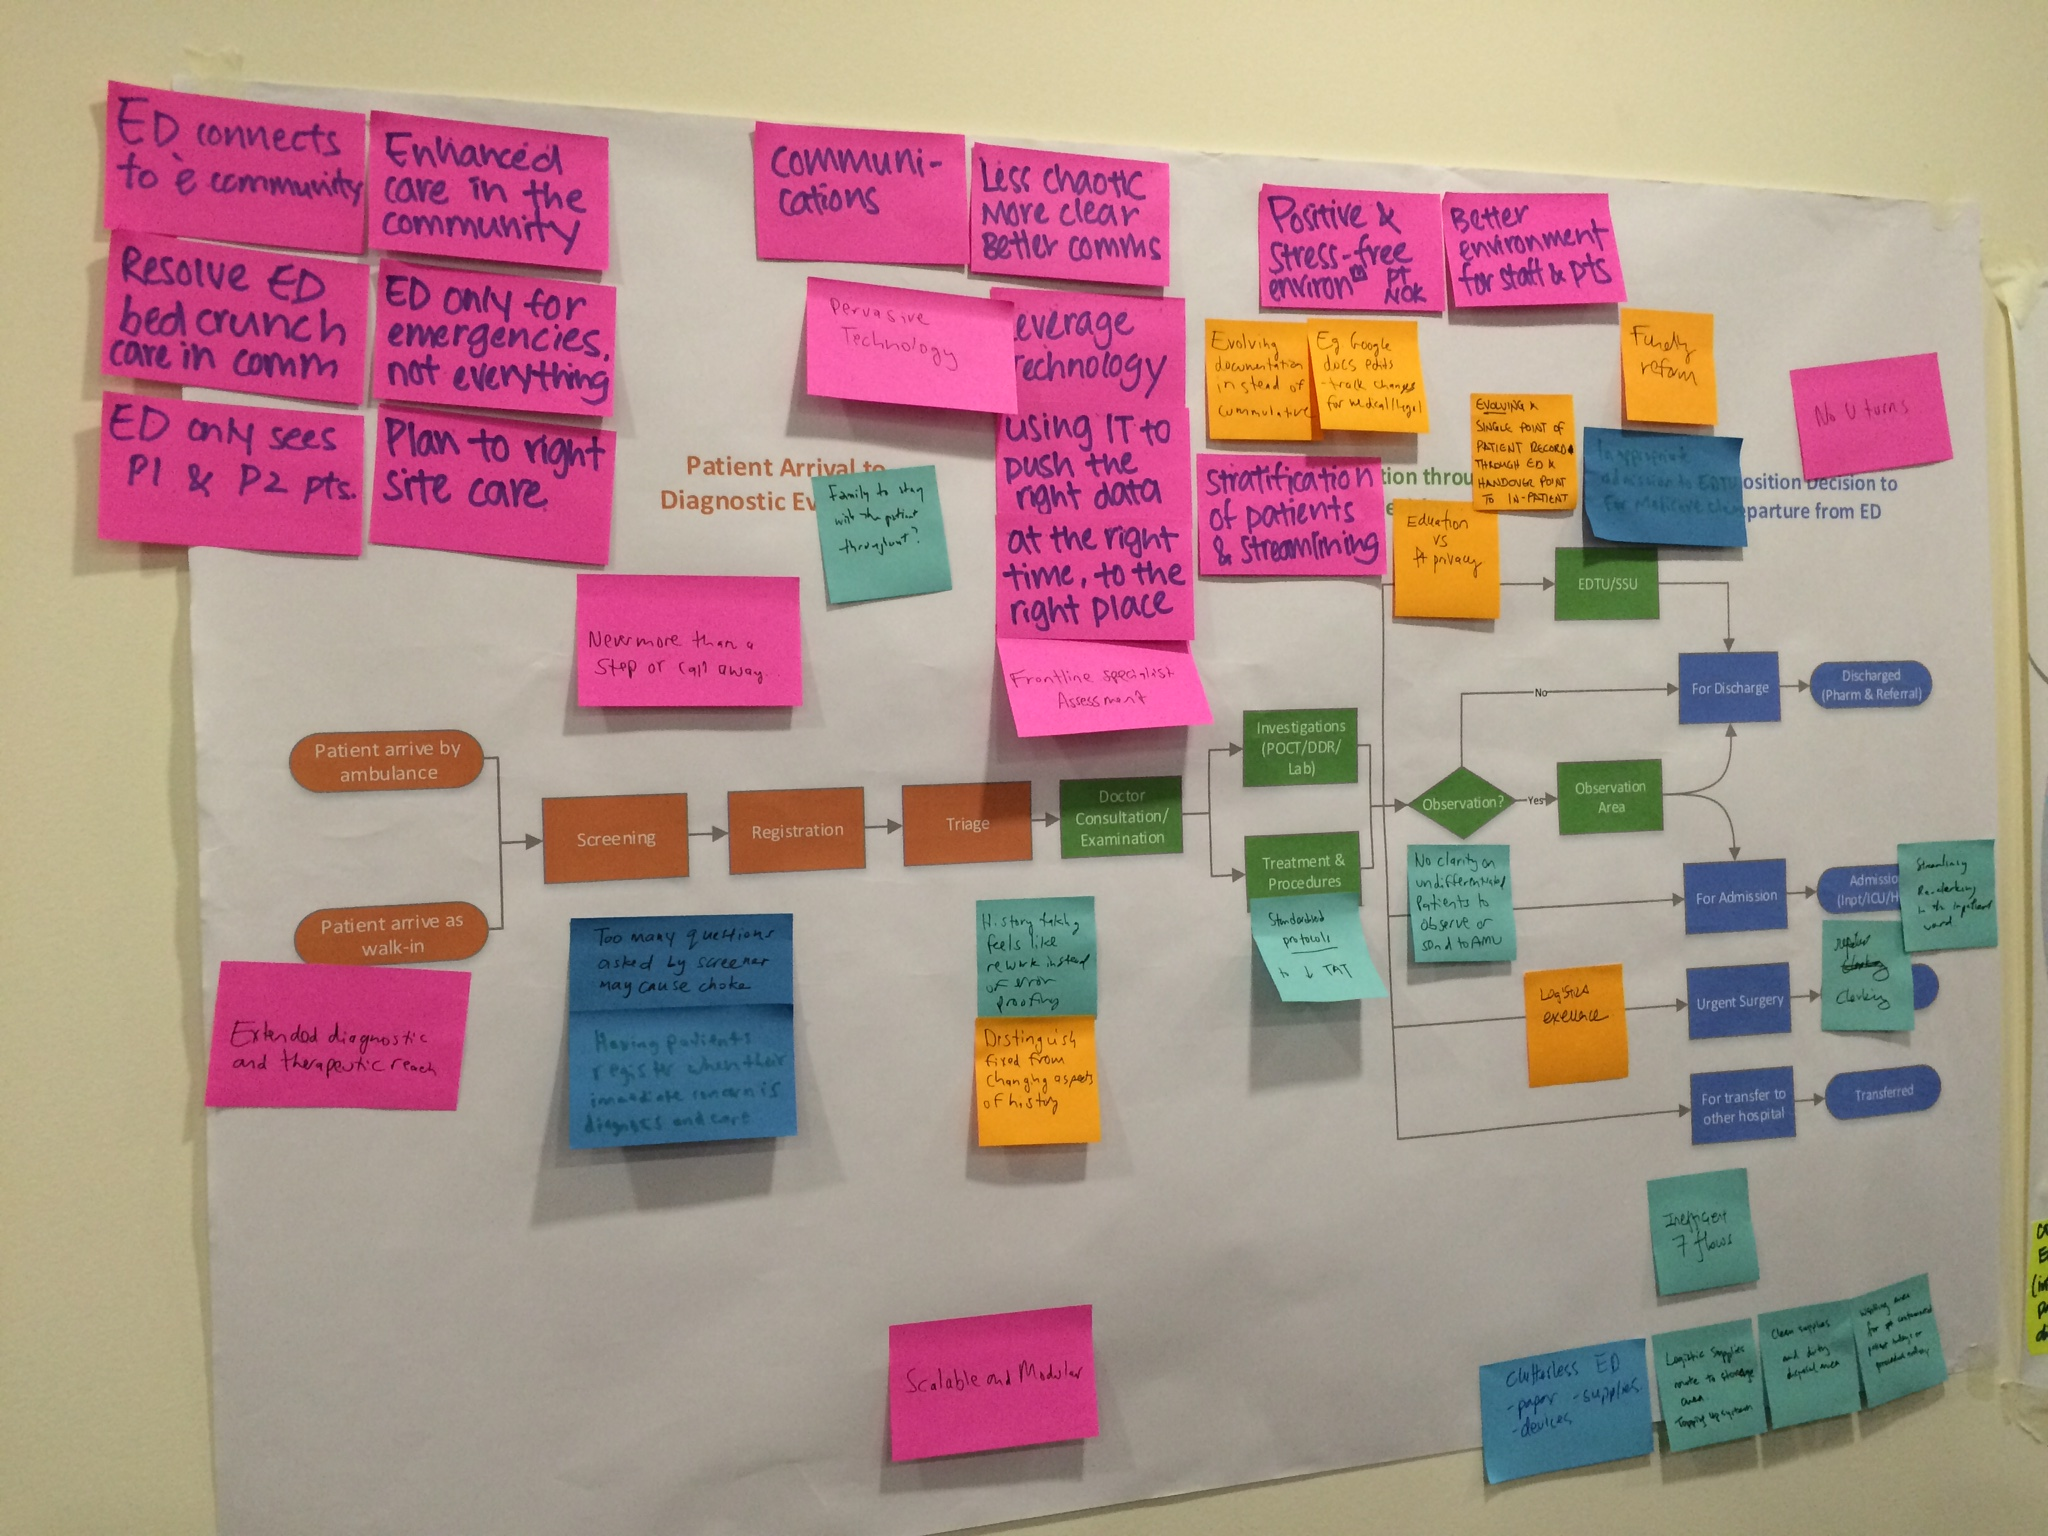 Figuring out the Emergency Department process model